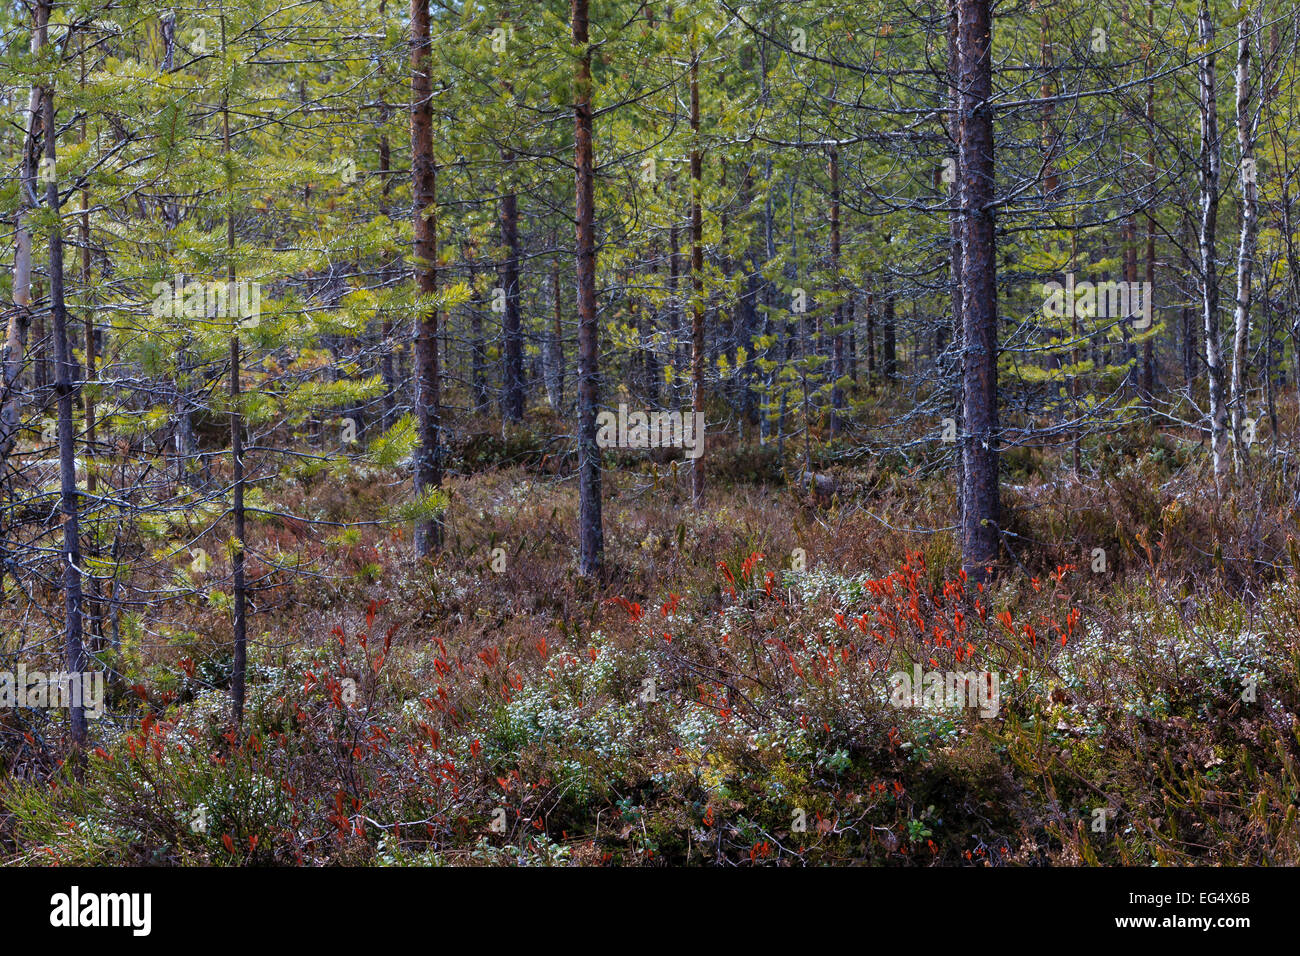 Boreal forest, Viiksimo Finland - Stock Image